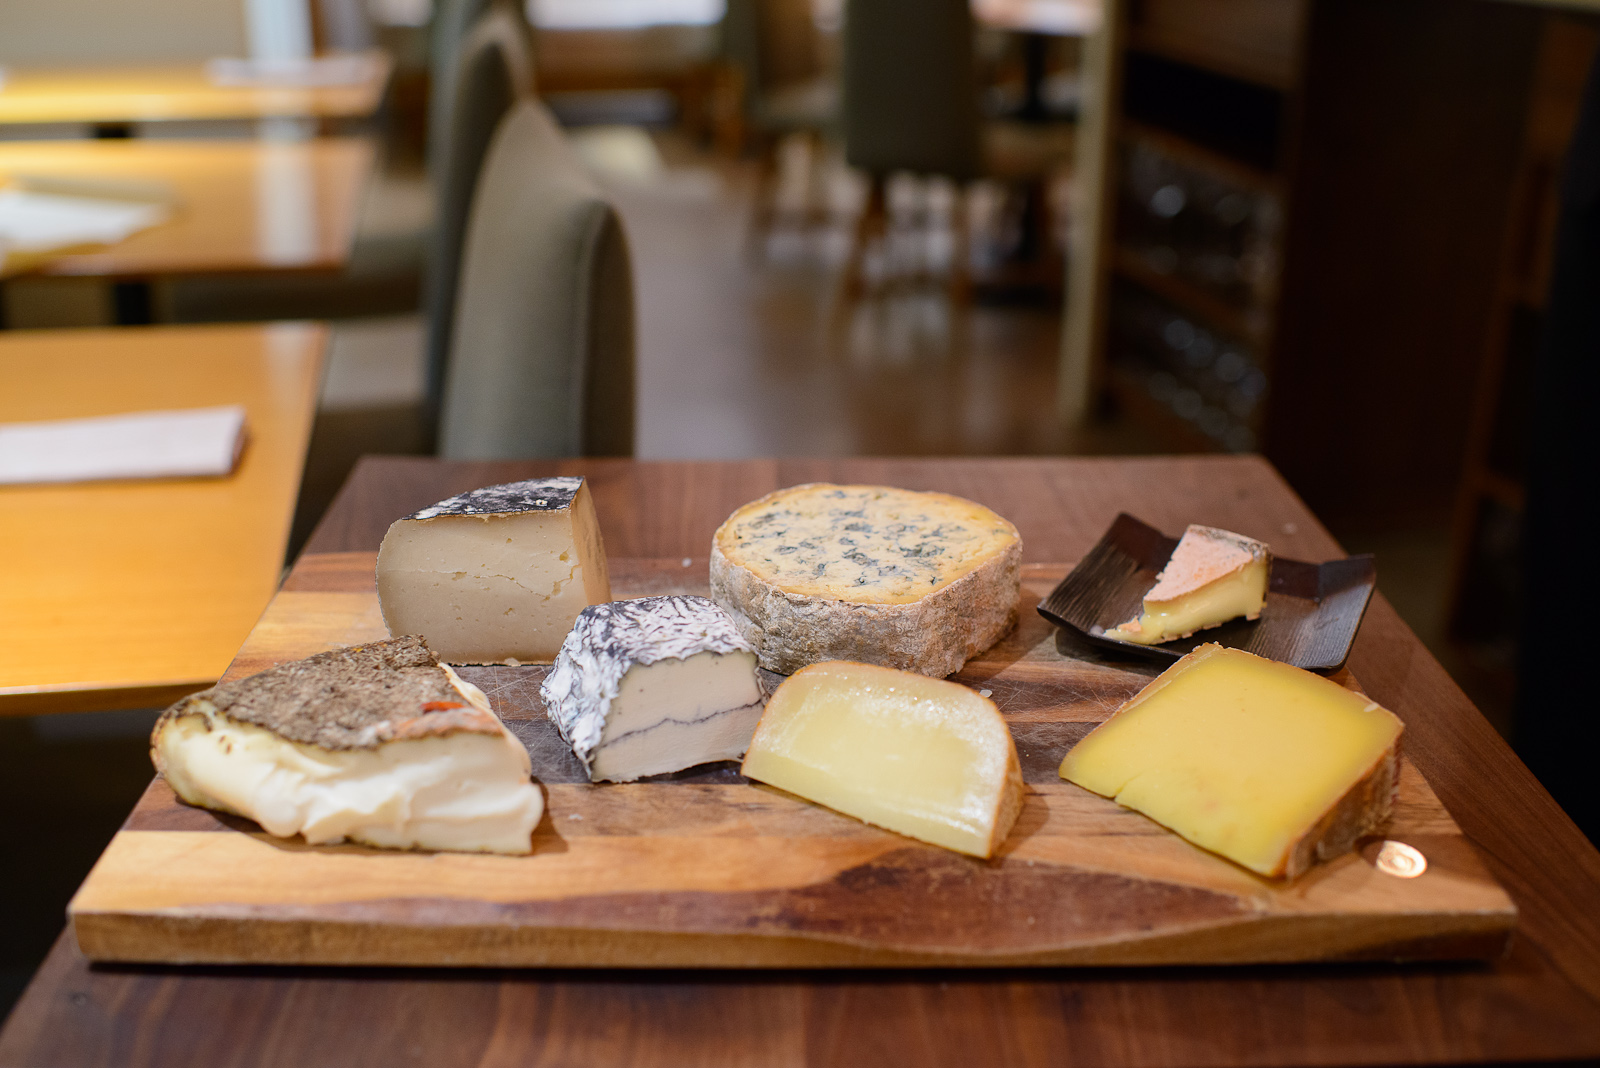 Assorted cheeses both European and domestic